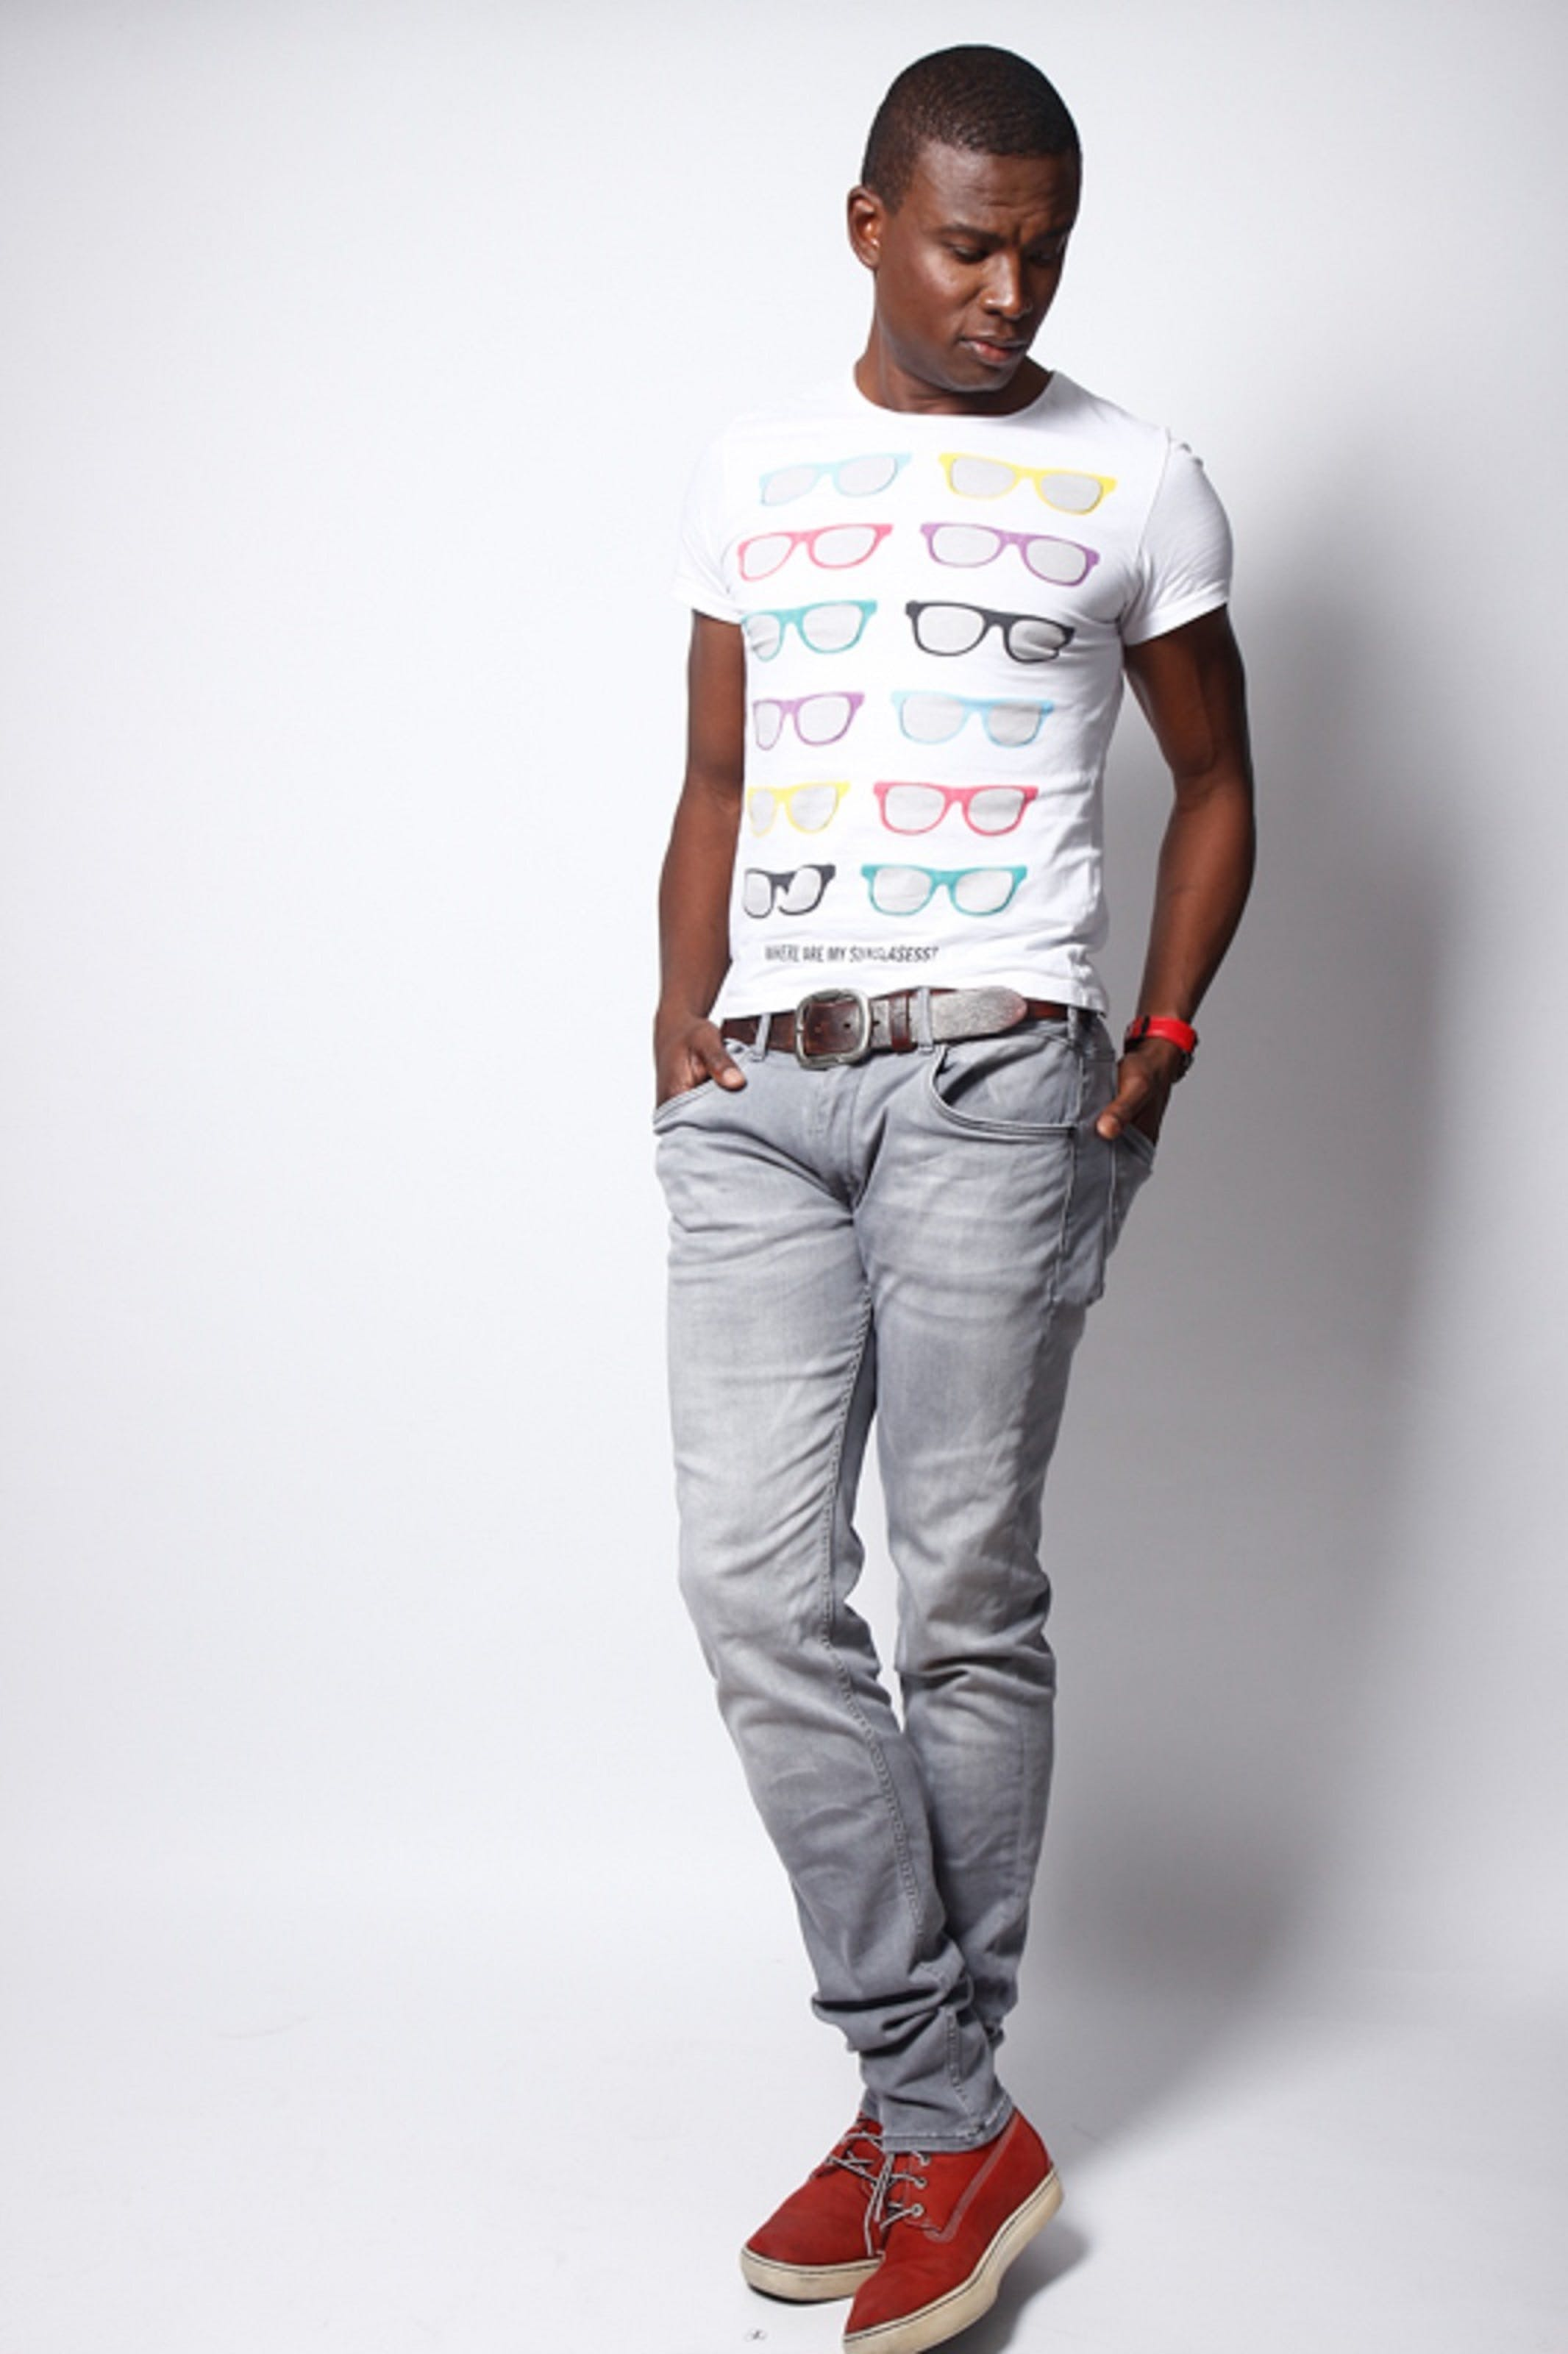 Man Wearing White Crew-neck T-shirt and Gray Pants Outfit